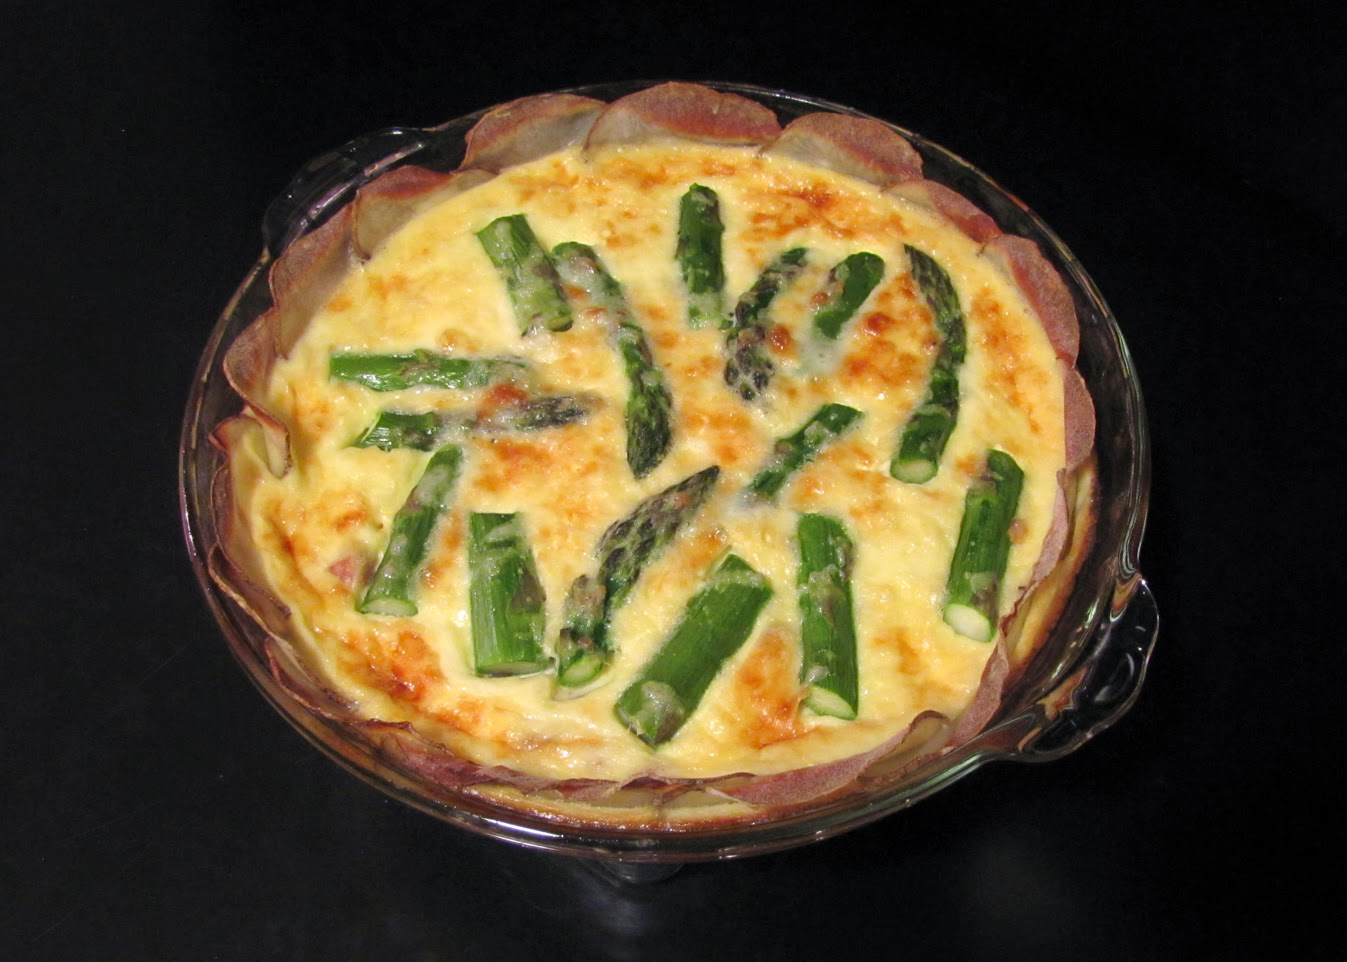 ... Food in Here: Asparagus, Mushroom and Ham Quiche with a Potato Crust